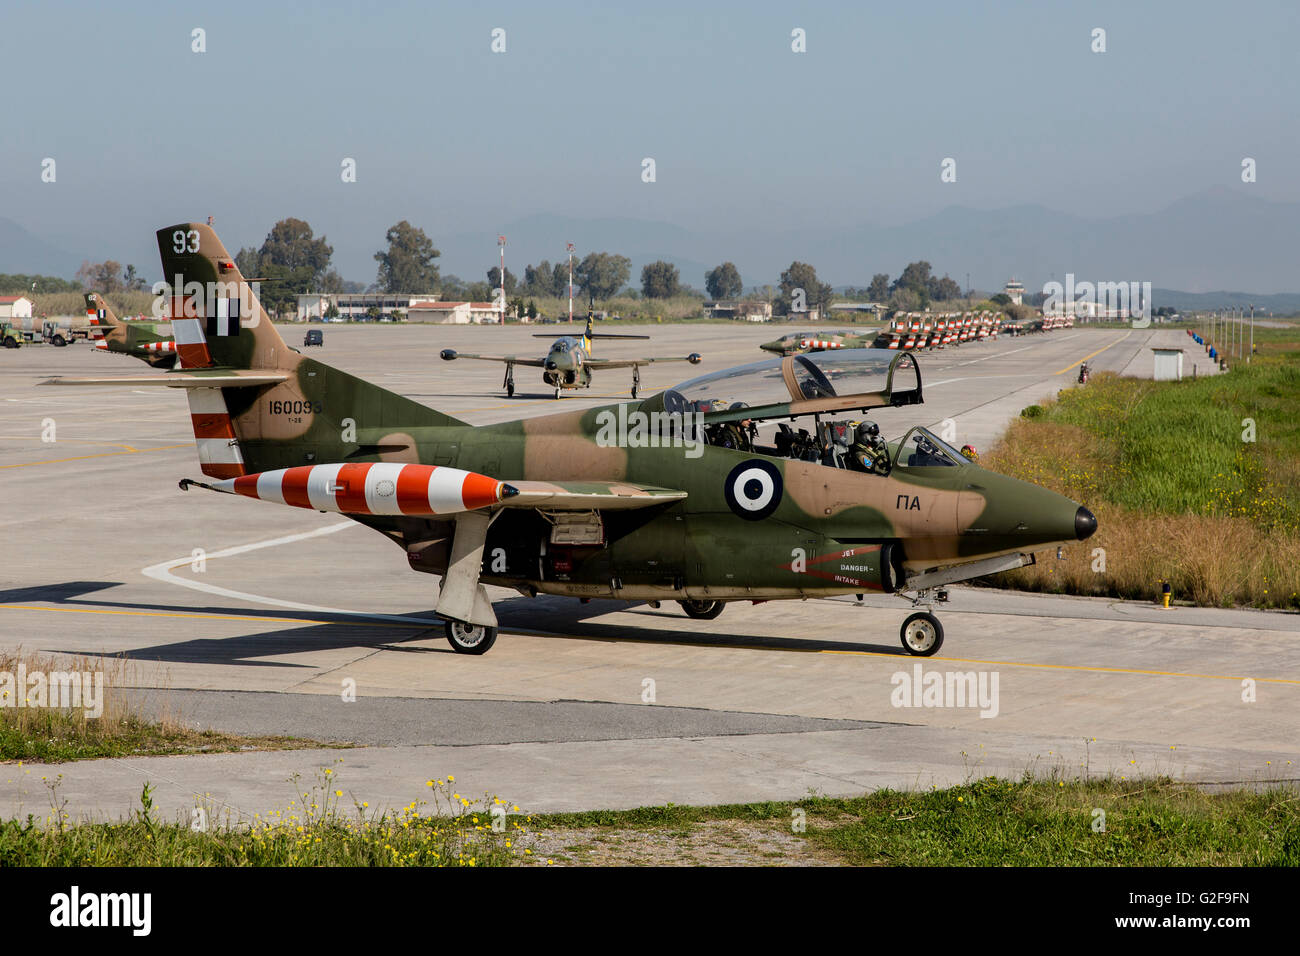 A Hellenic Air Force T-2 Buckeye trainer plane, Kalamata, Greece. Greece being the only counry that still uses them. - Stock Image